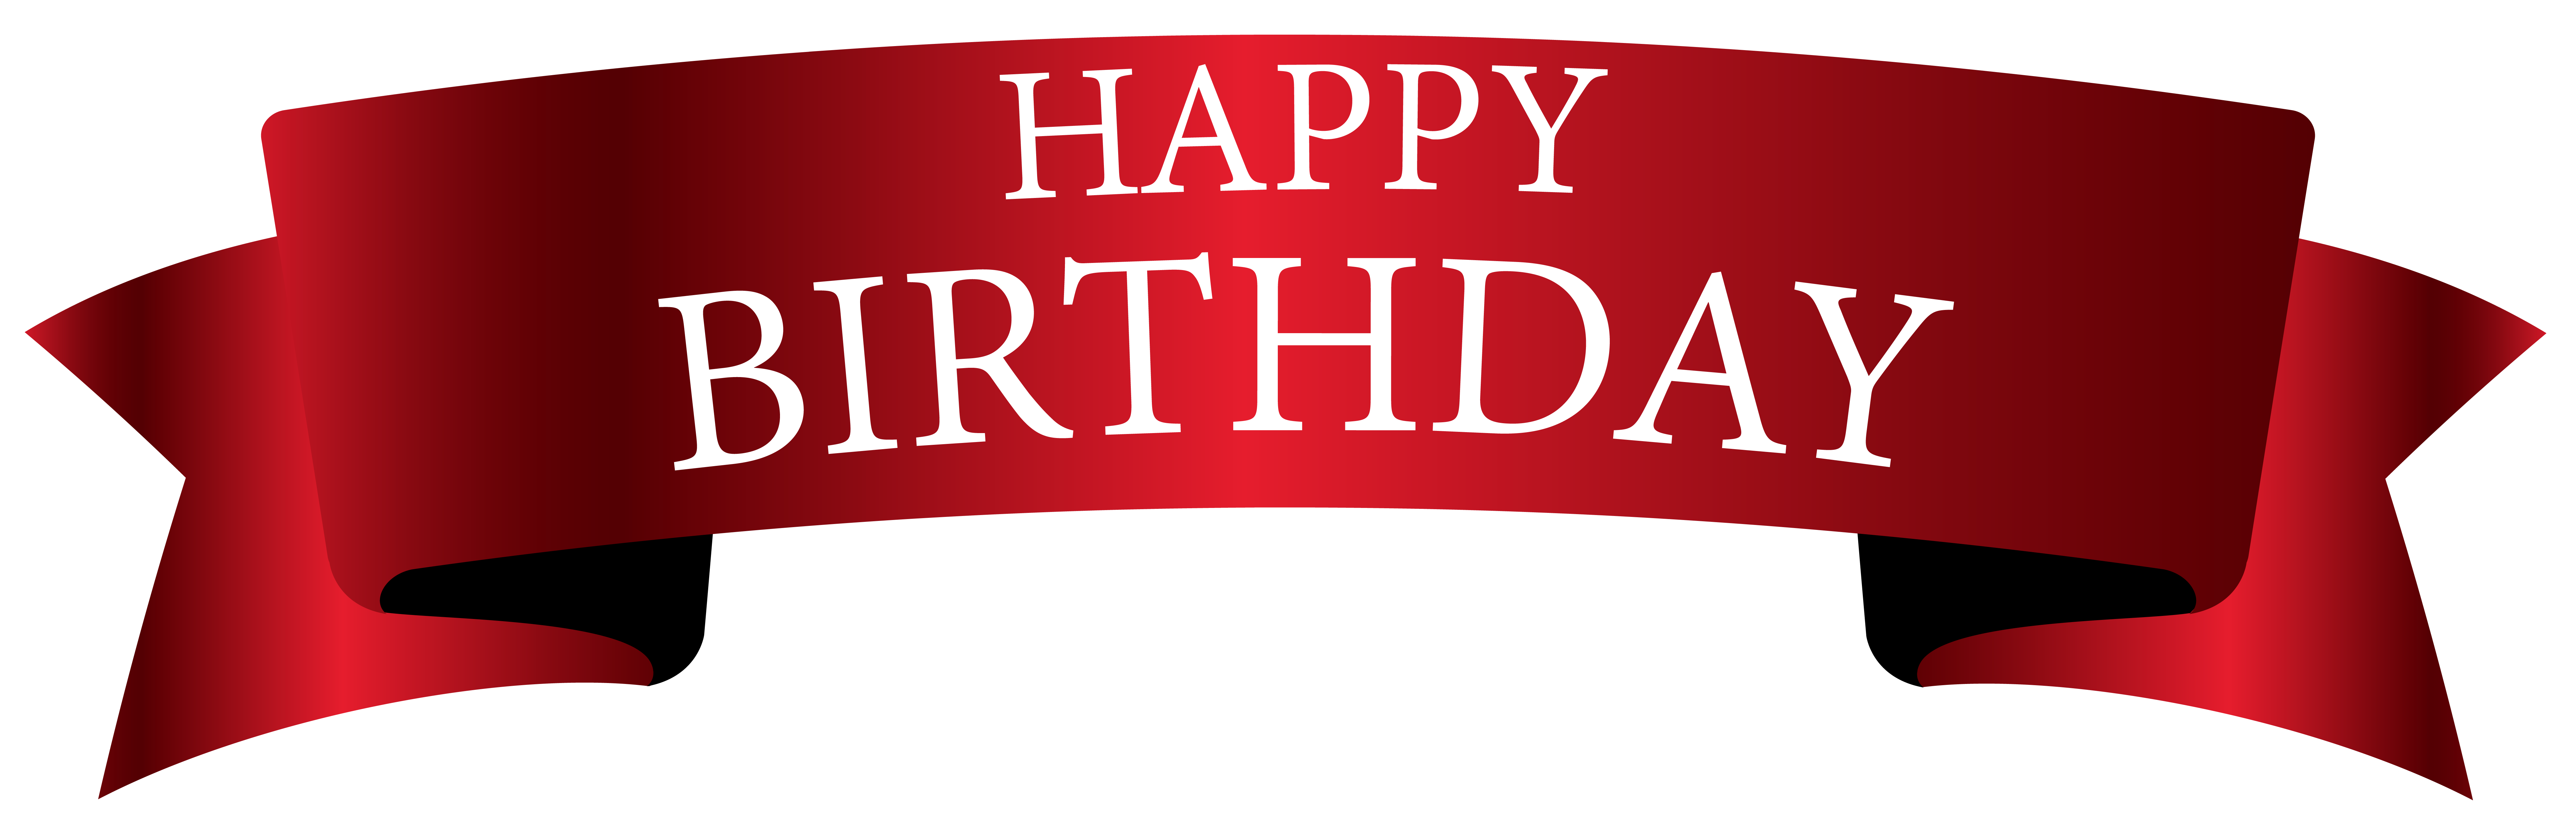 clip free library Red physic minimalistics co. Happy birthday banner clipart